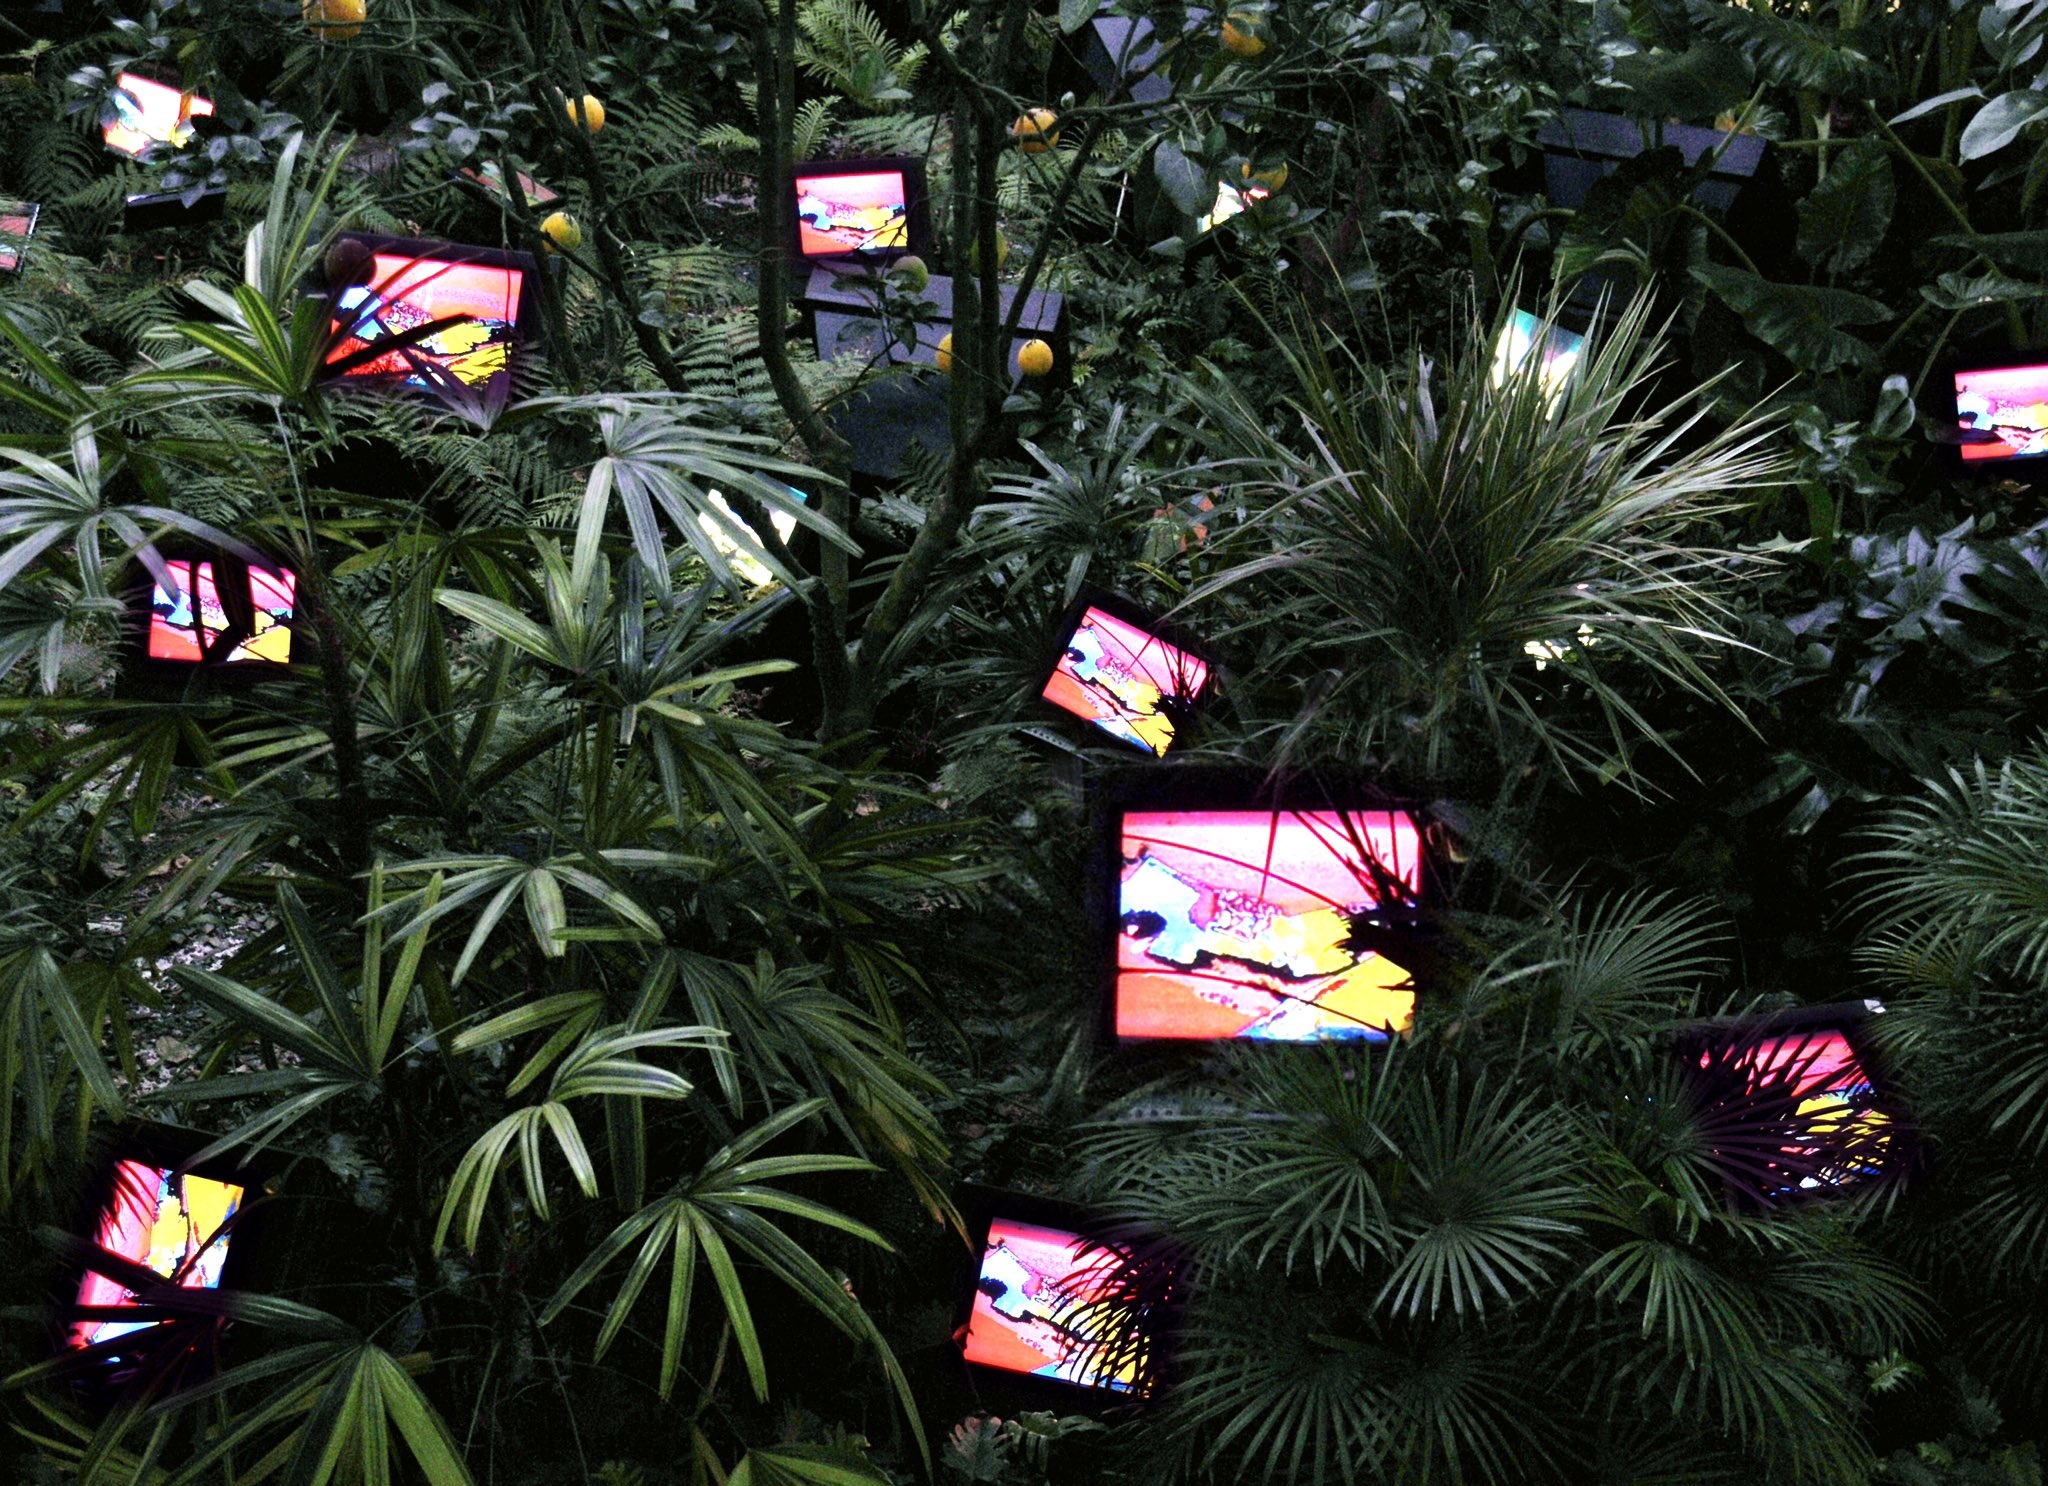 Nam-June-Paik-TV-Garden-1974-2002-Version-video-installation-with-color-television-sets-and-live-plants-dimensions-vary-with-installation-4 (1)